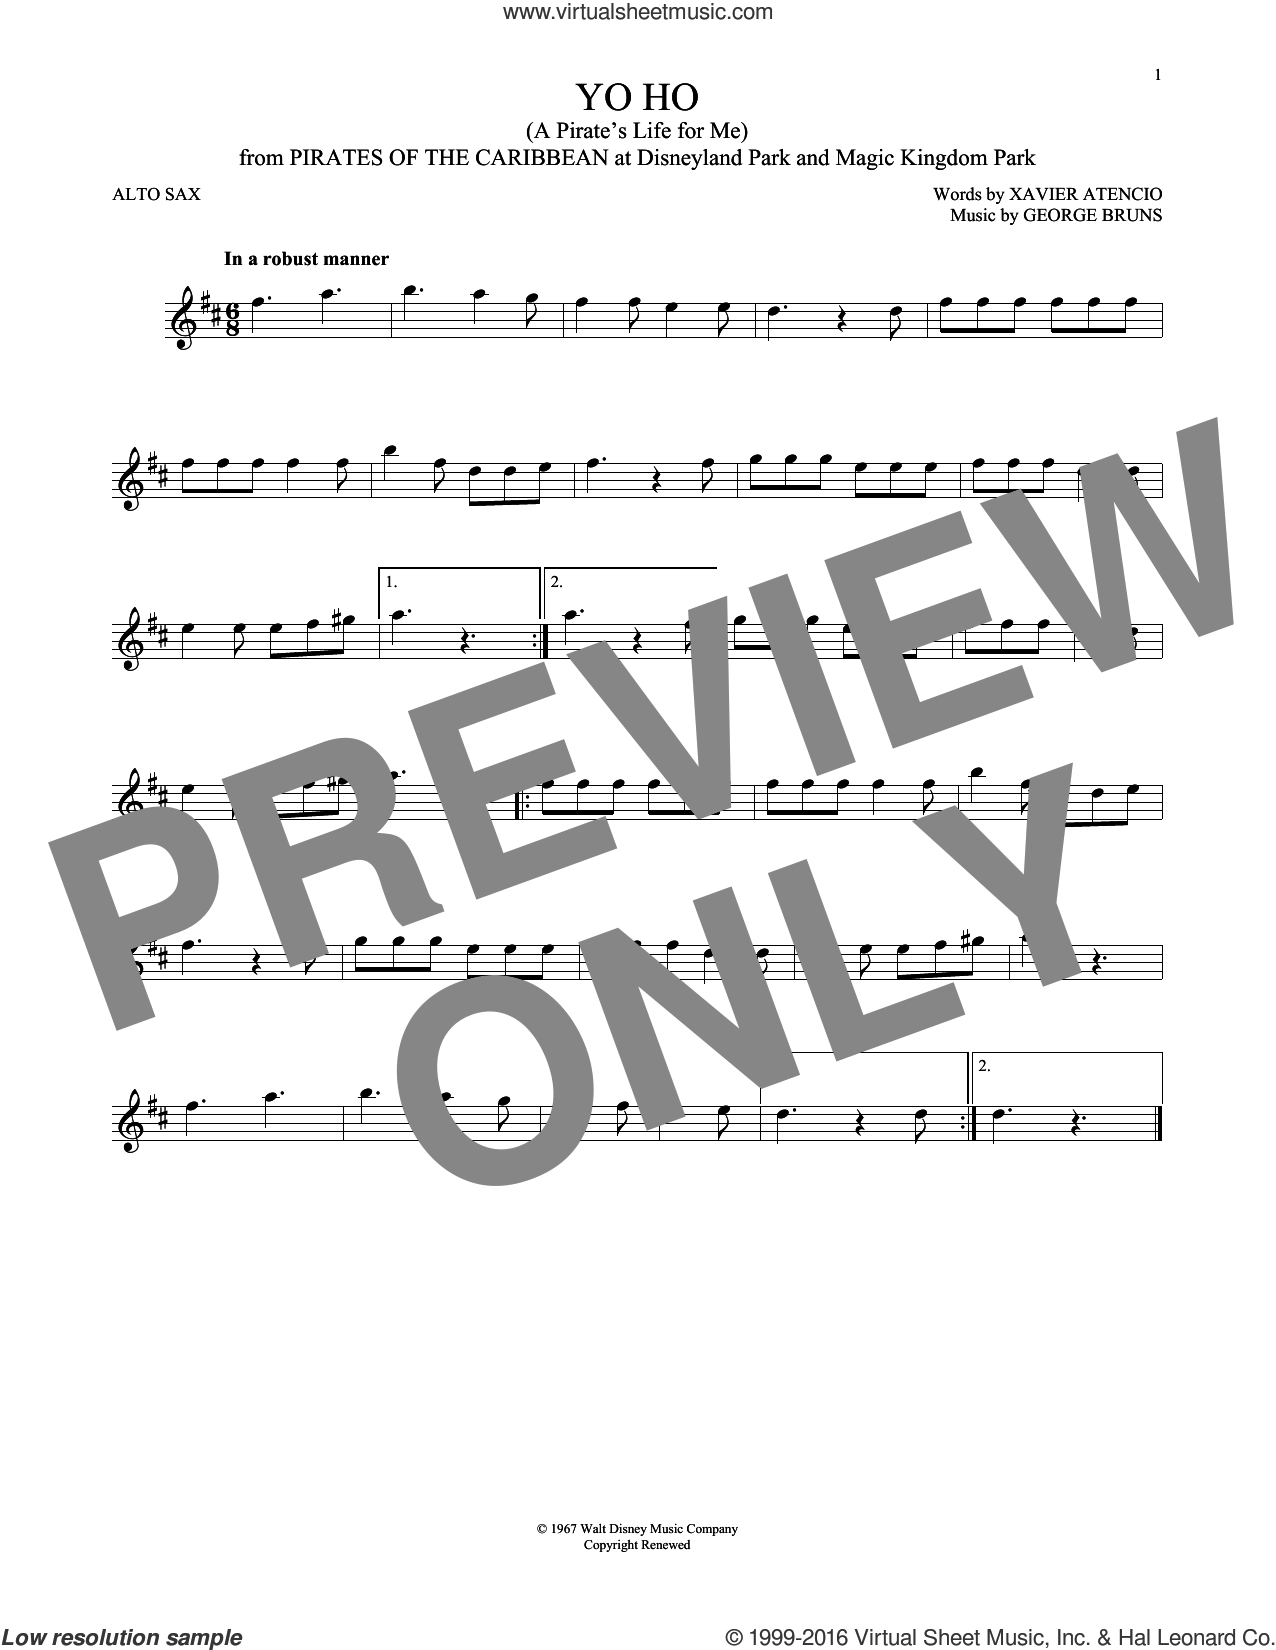 Yo Ho (A Pirate's Life For Me) sheet music for alto saxophone solo by George Bruns and Xavier Atencio, intermediate. Score Image Preview.